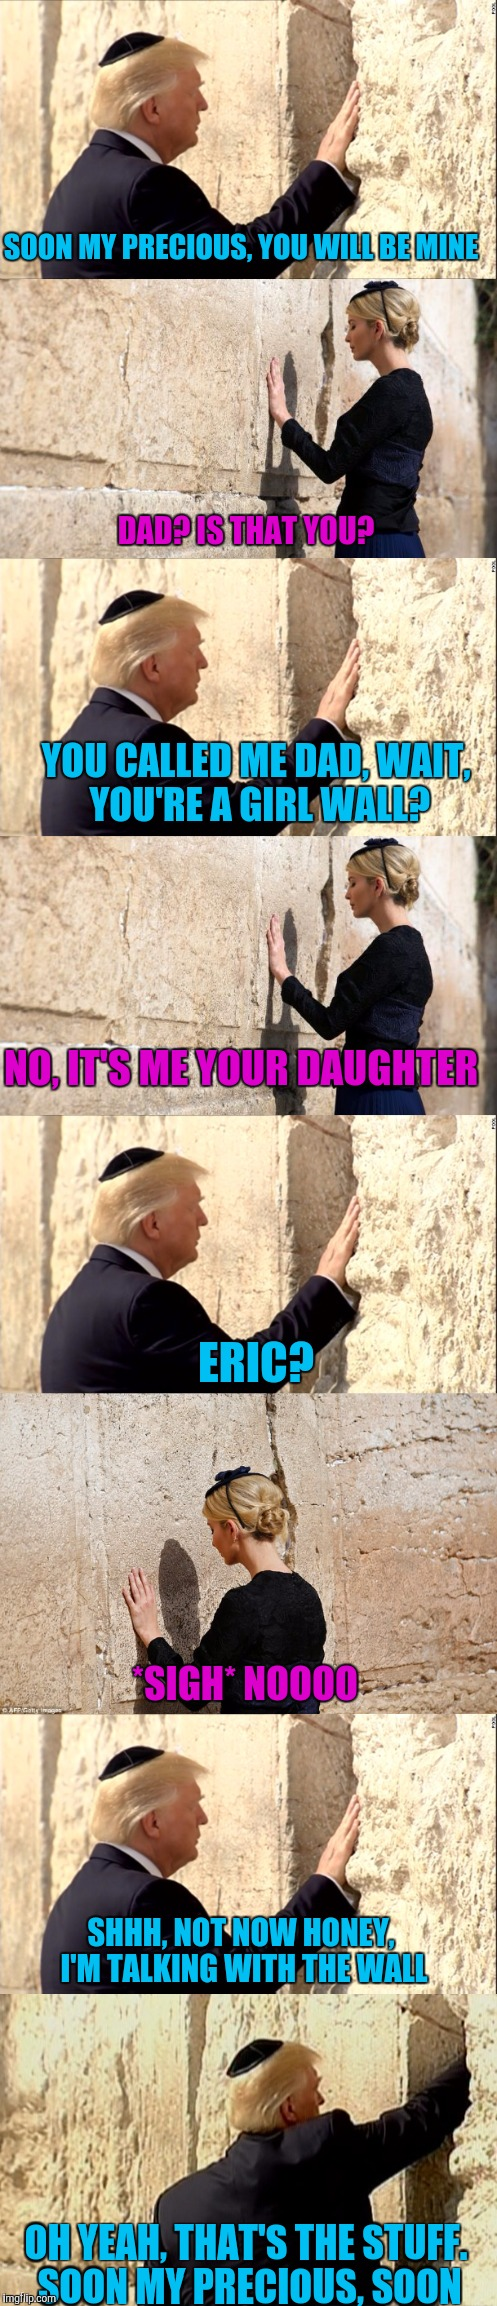 Trump and the Wall. A love story. | SOON MY PRECIOUS, YOU WILL BE MINE DAD? IS THAT YOU? YOU CALLED ME DAD, WAIT, YOU'RE A GIRL WALL? NO, IT'S ME YOUR DAUGHTER ERIC? *SIGH* NOO | image tagged in sewmyeyesshut,donald trump,ivanka trump,wailing wall,the wall | made w/ Imgflip meme maker